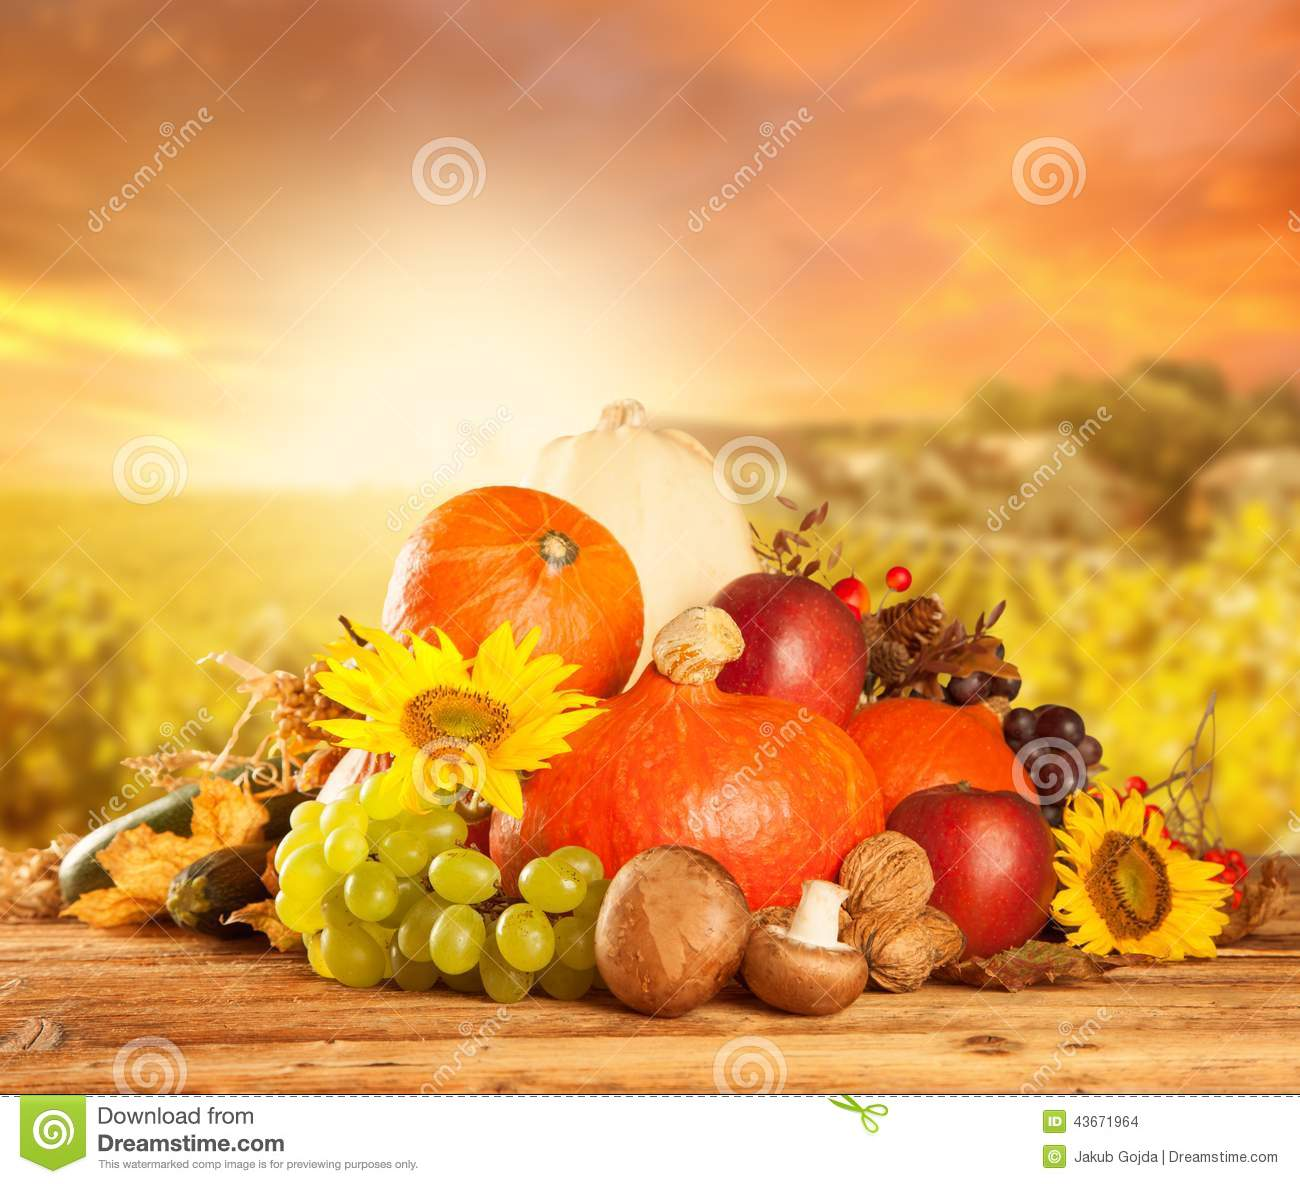 August 2014 Cpo Offers Table Jpg: Autumn Harvested Fruit And Vegetable On Wood Stock Photo